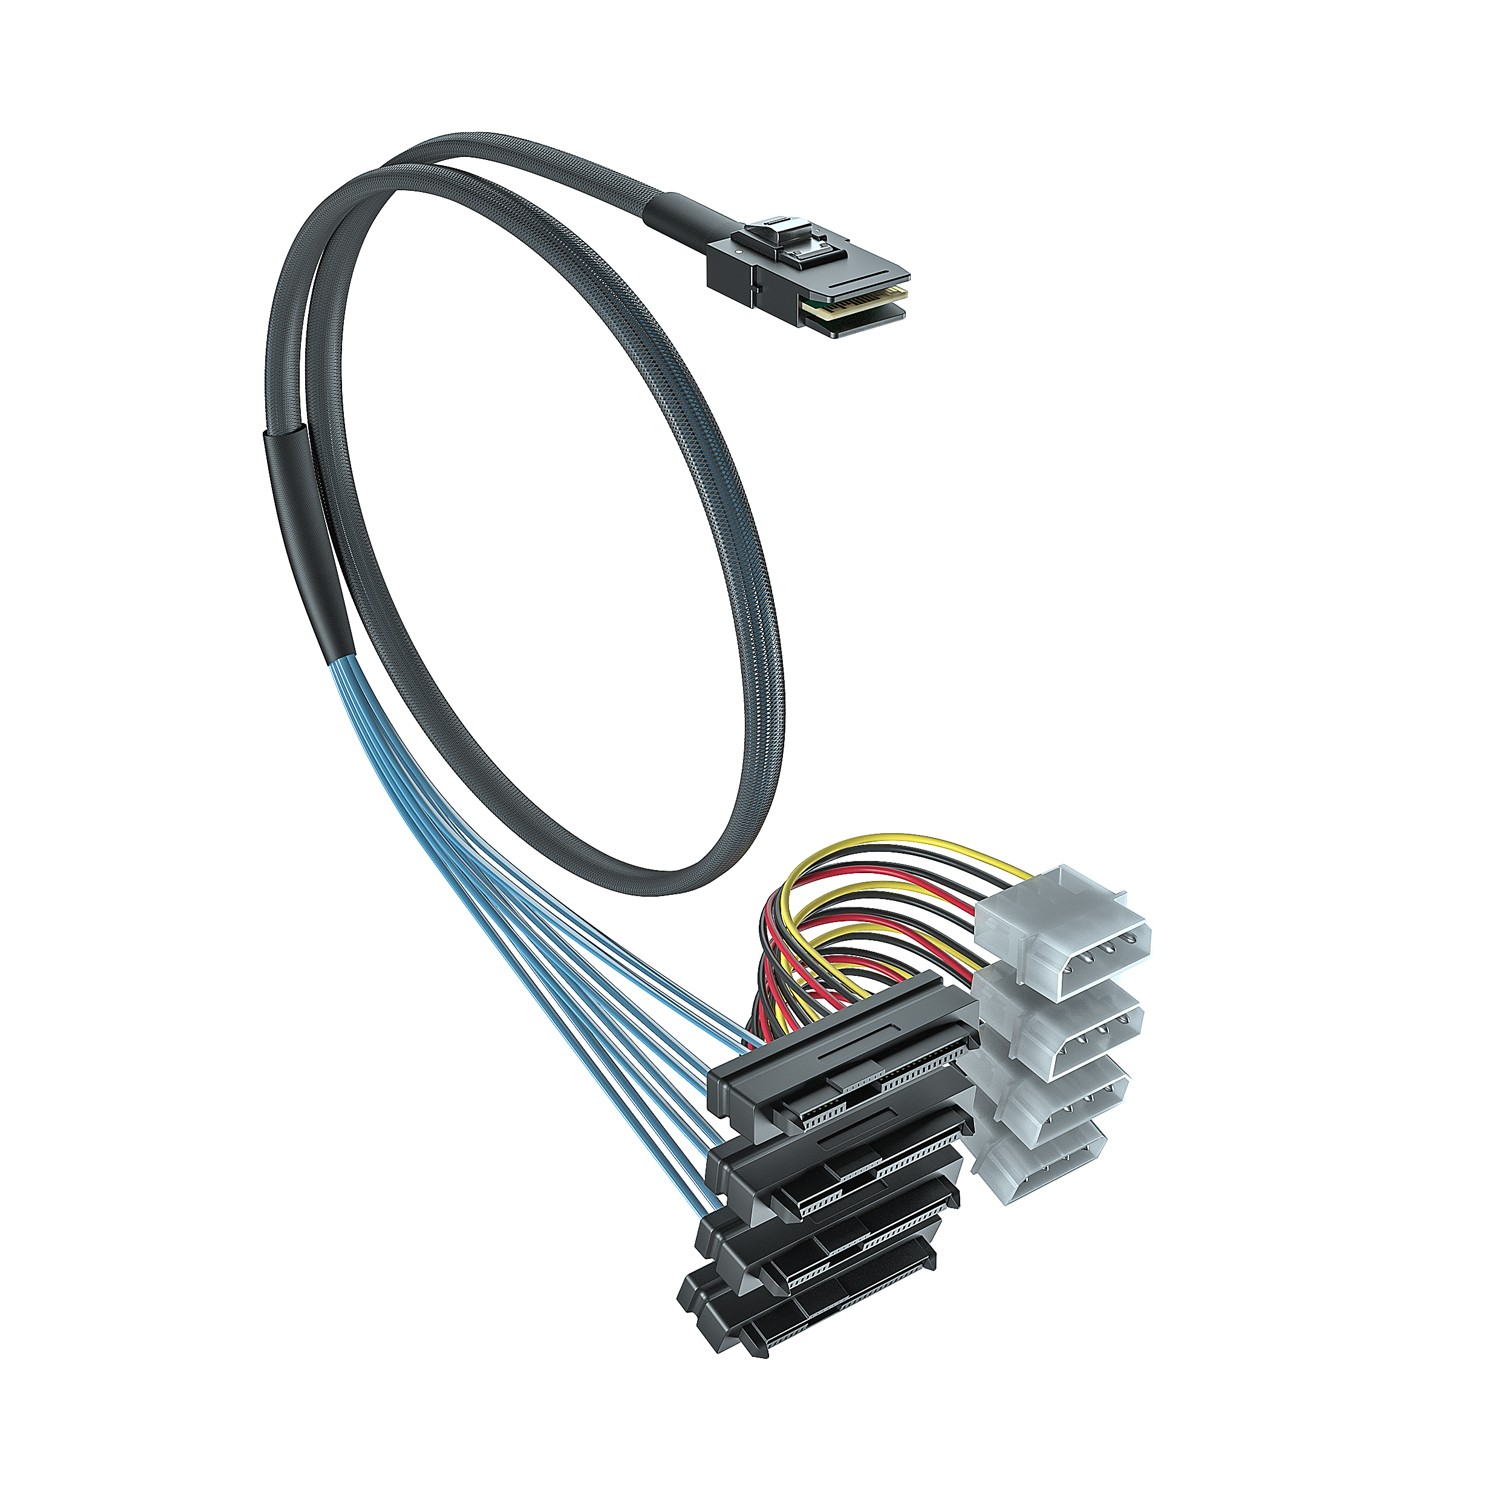 SFF-8087 to (4) SFF-8482 cable, 0.5~1 meter